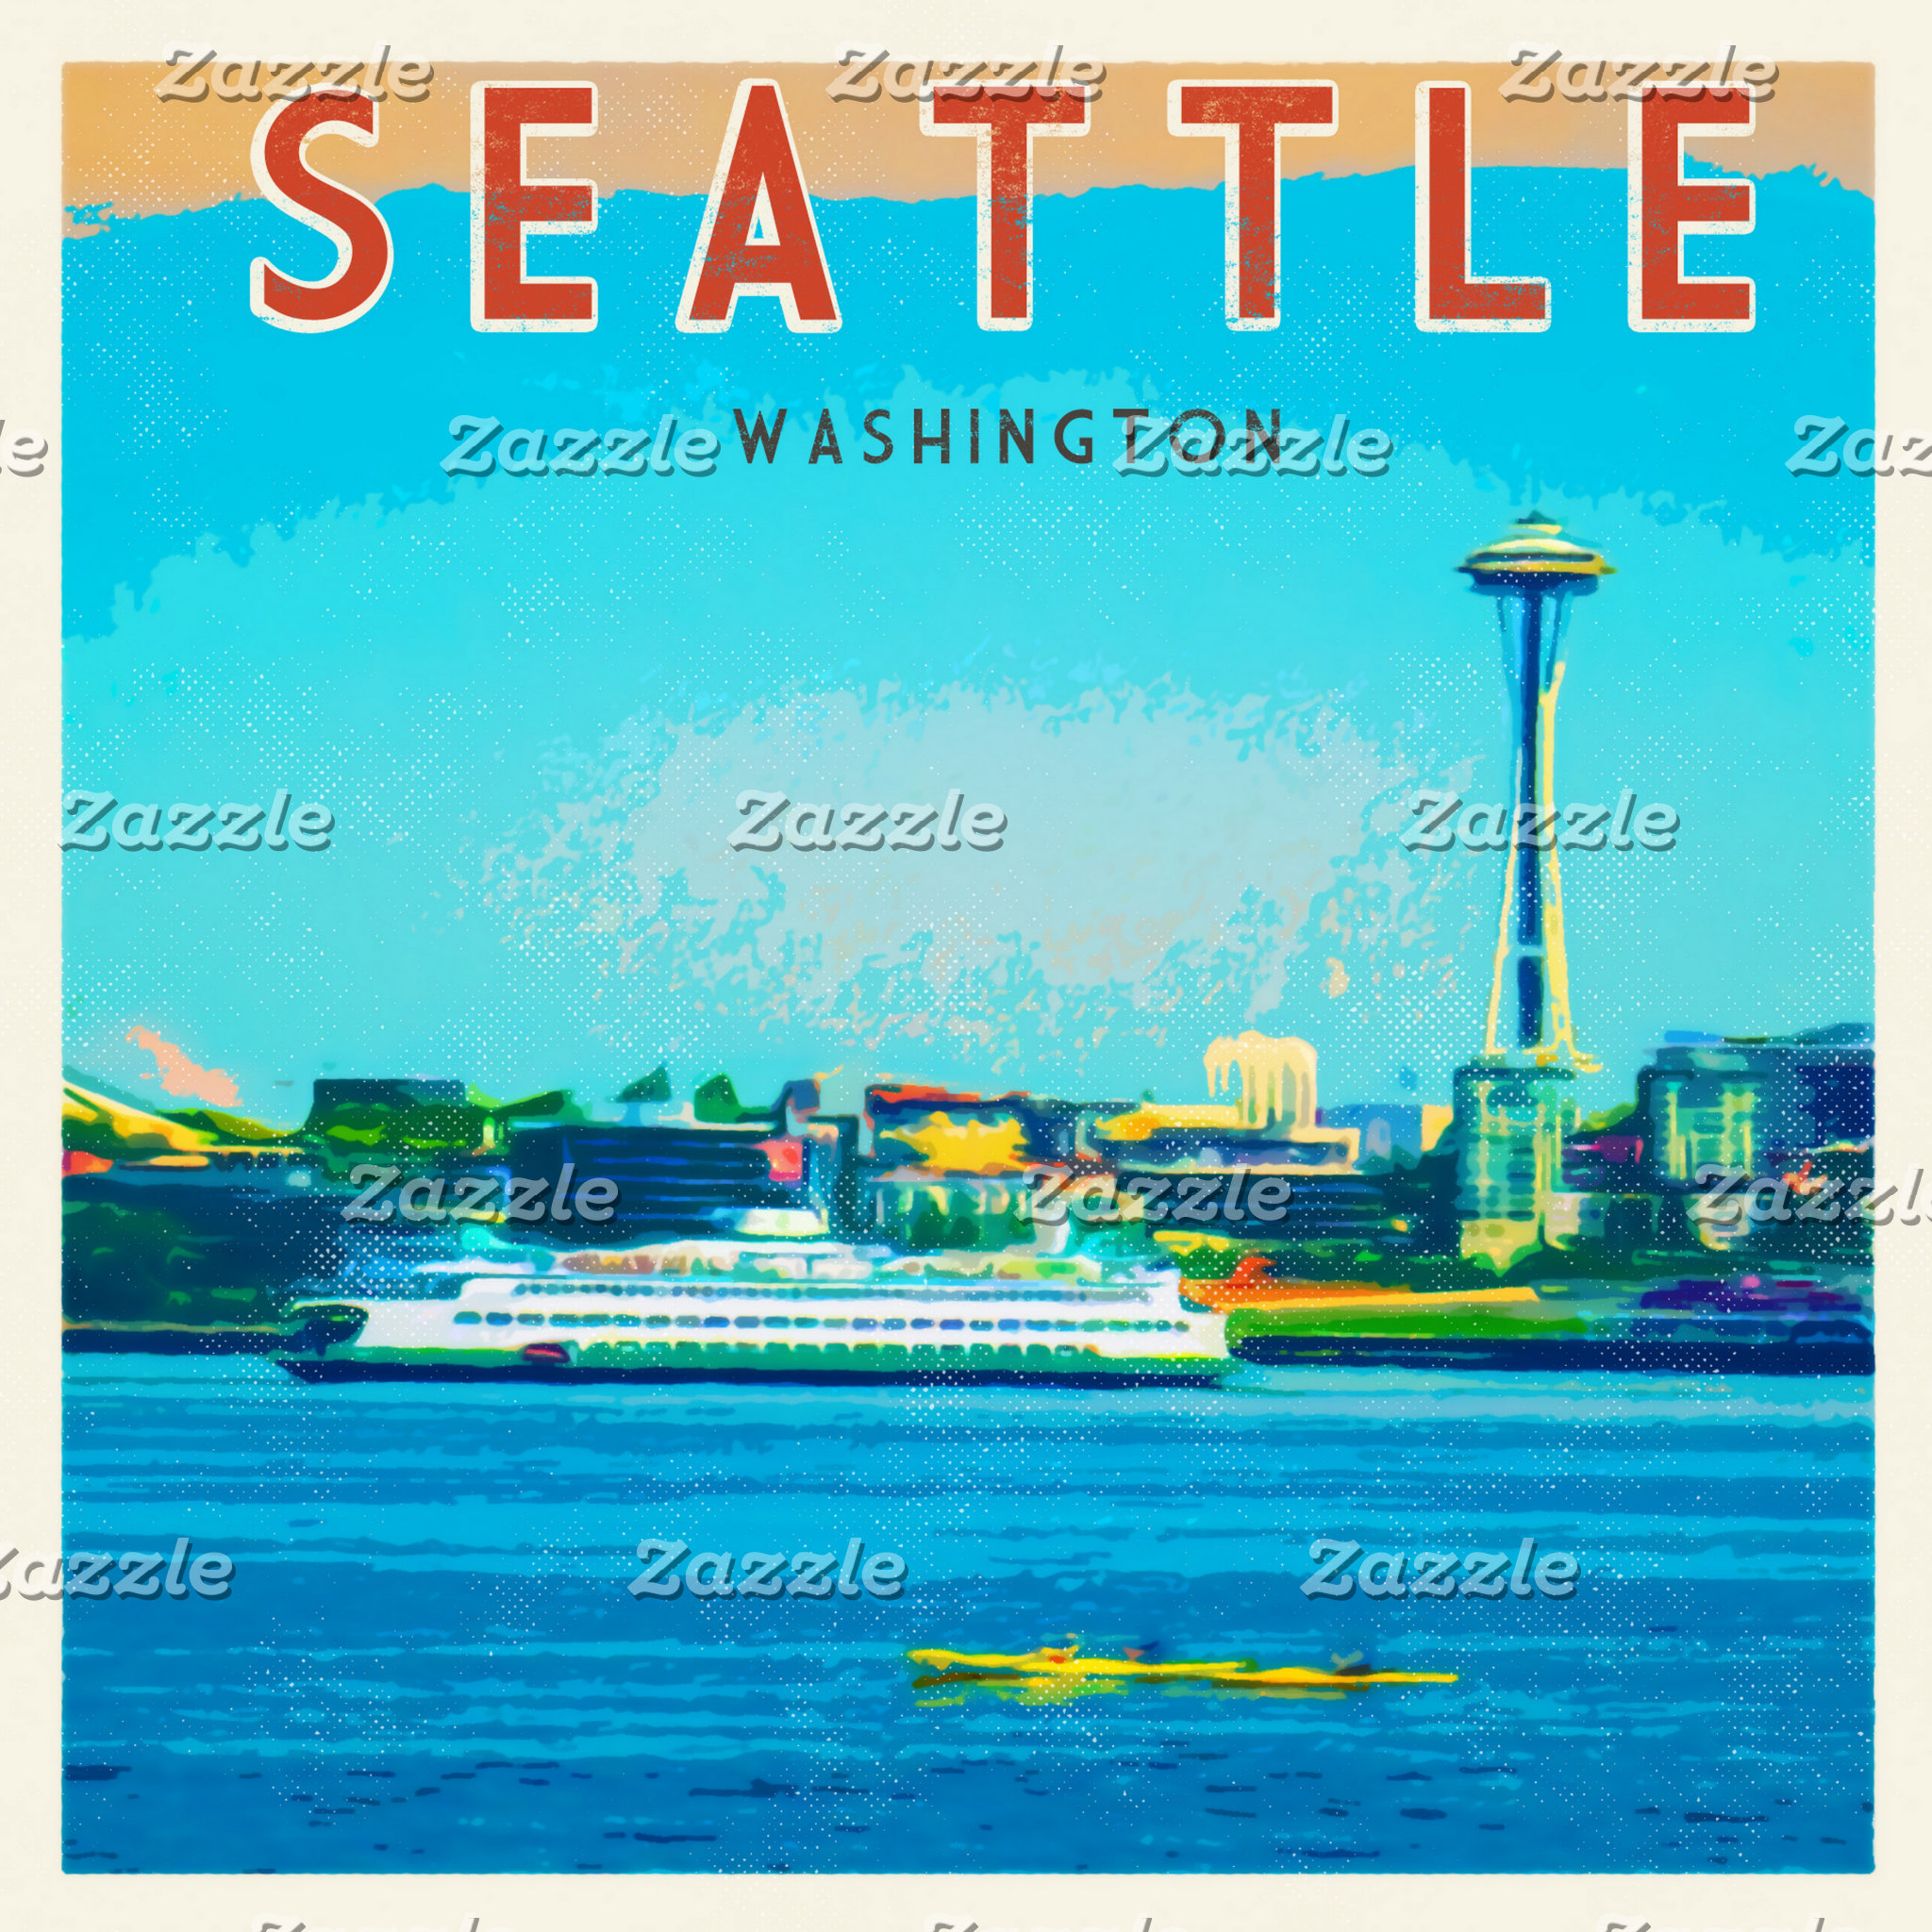 TRAVEL POSTERS AND CARDS